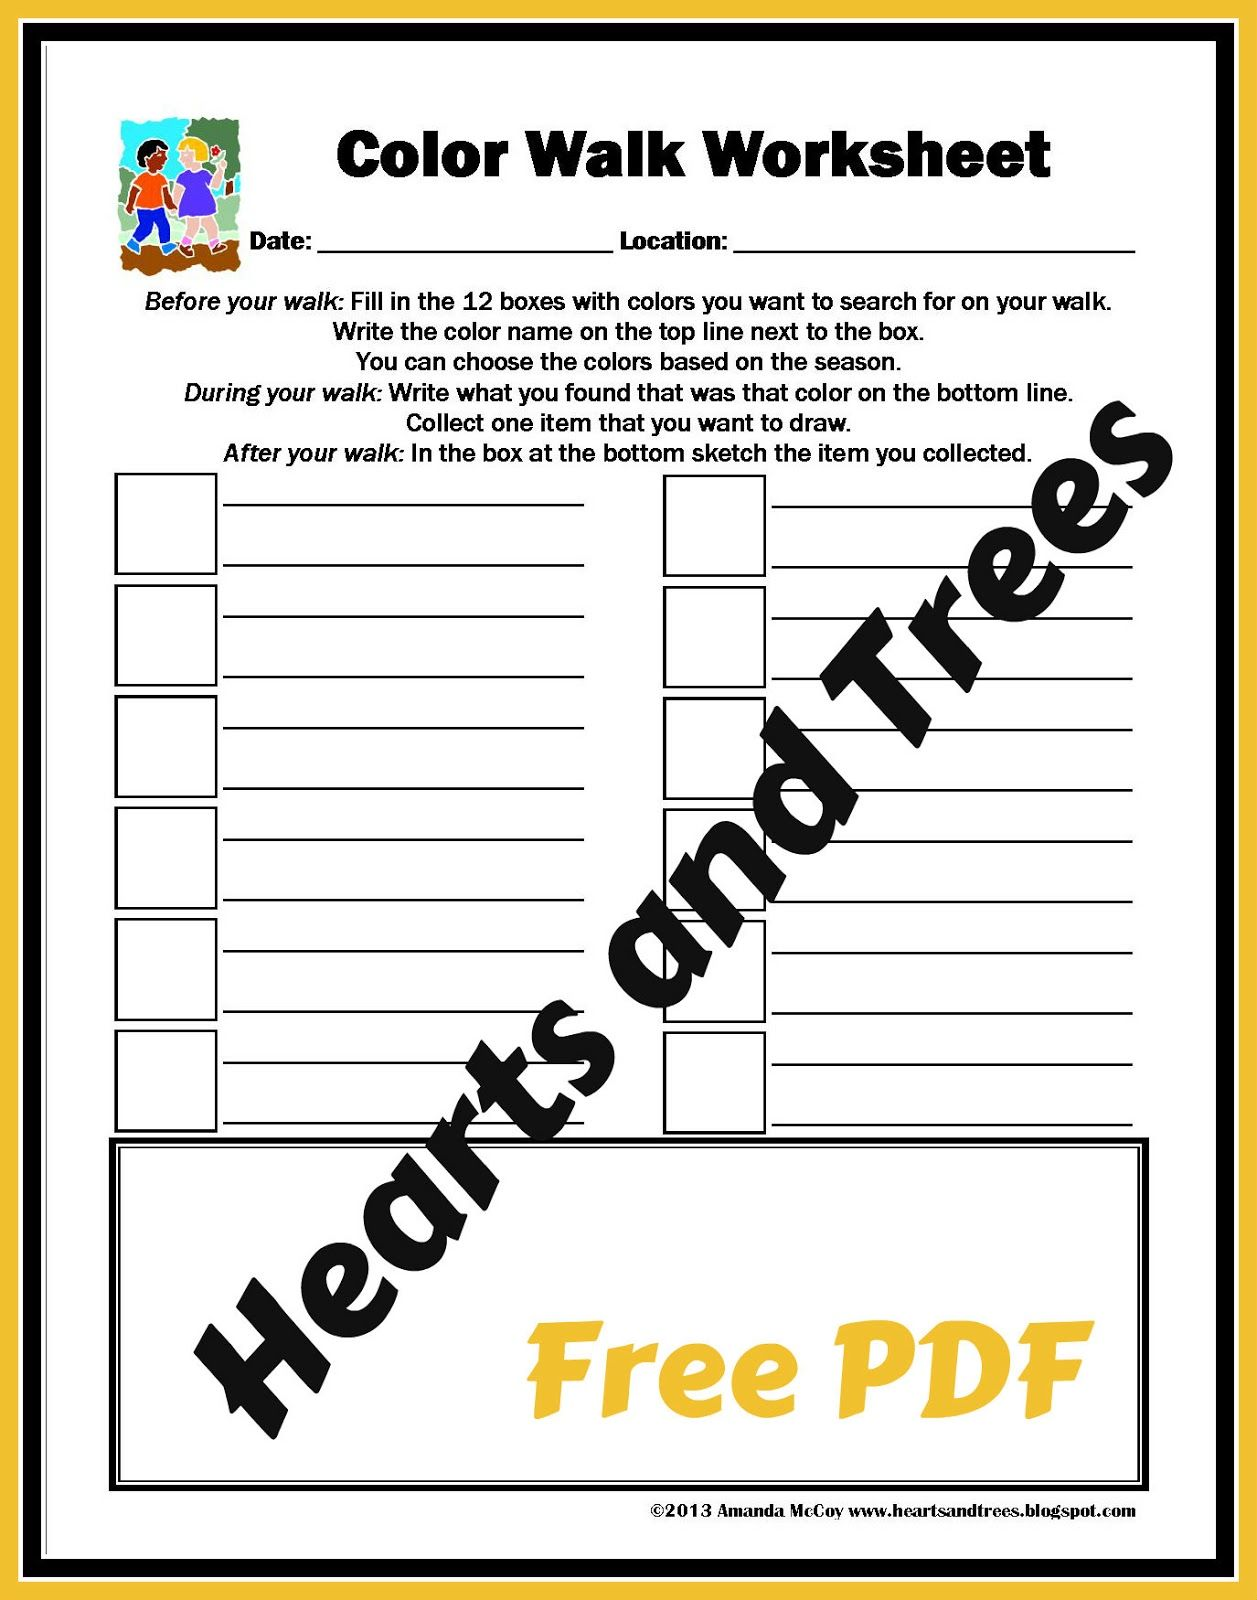 Free Printable Color Walk Worksheet